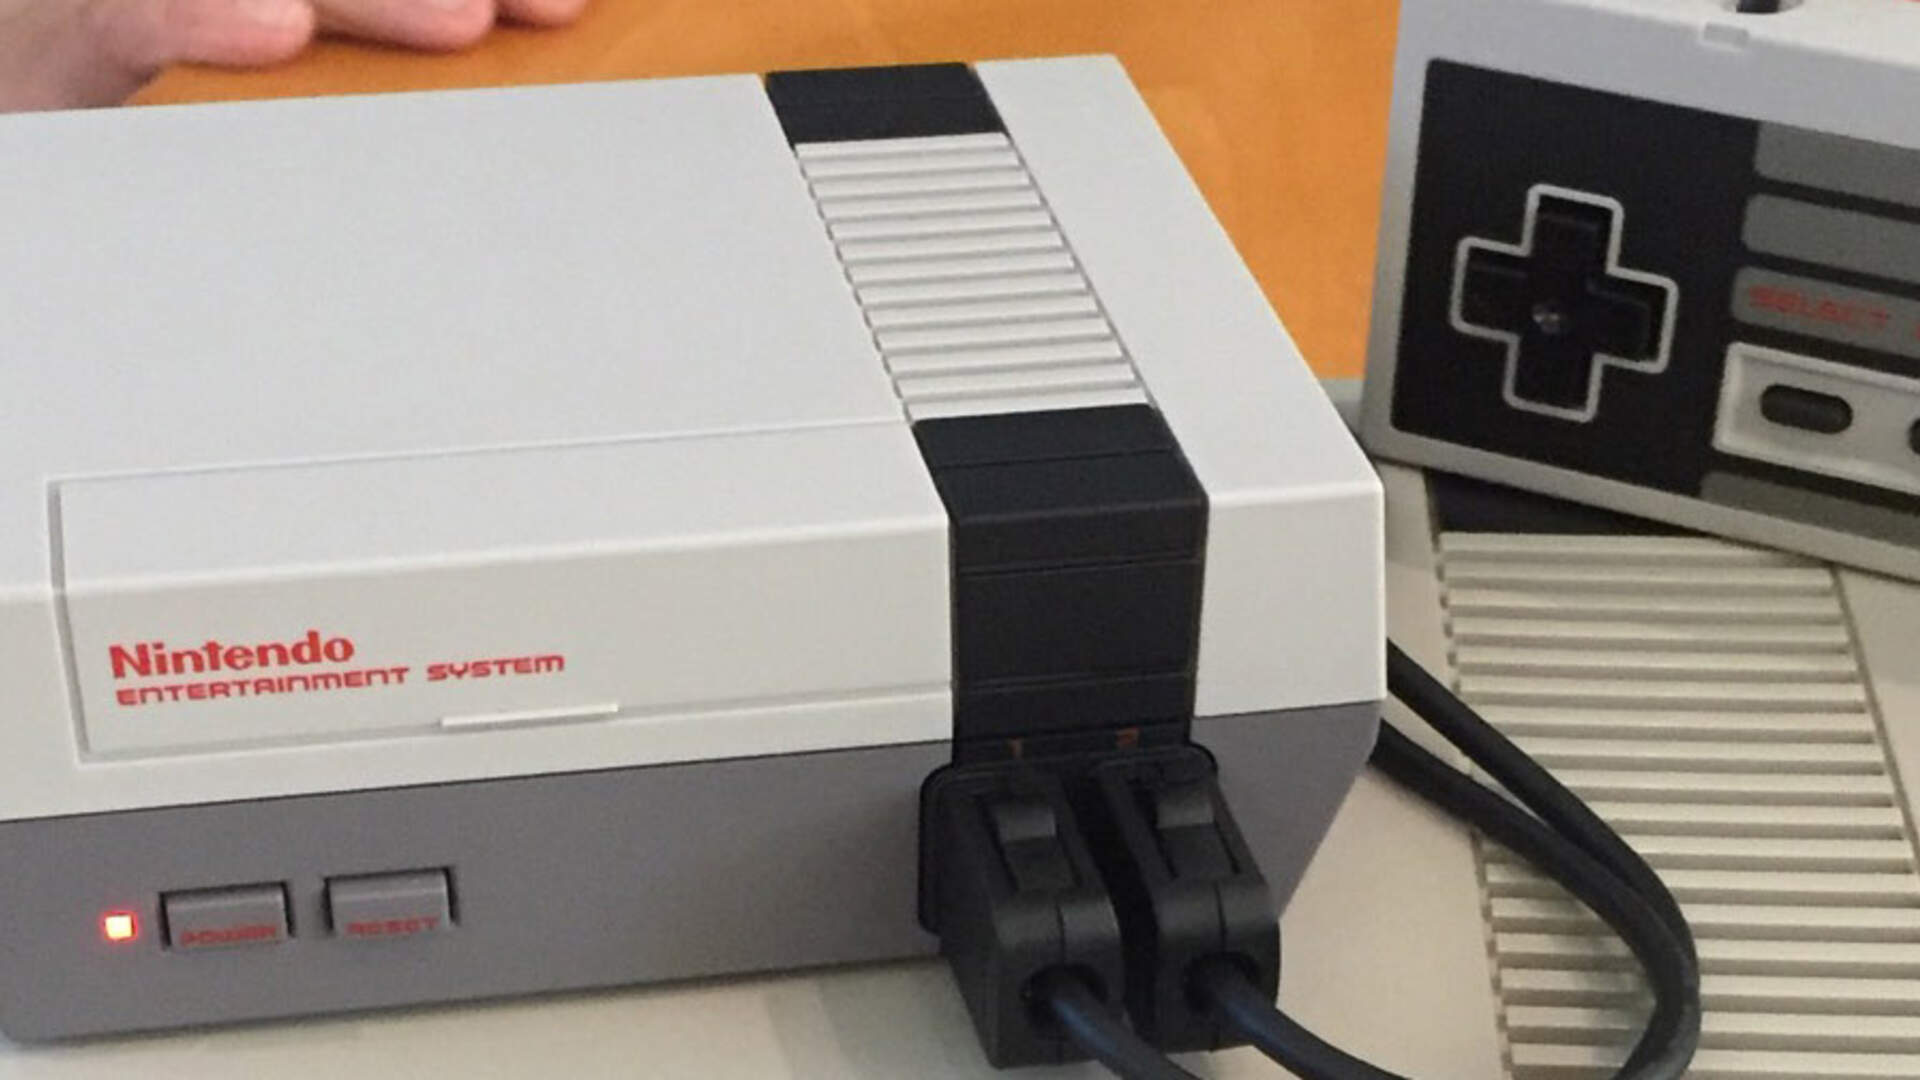 NES Classic Edition Hands-On Impression: Big on Fun, Light on Features